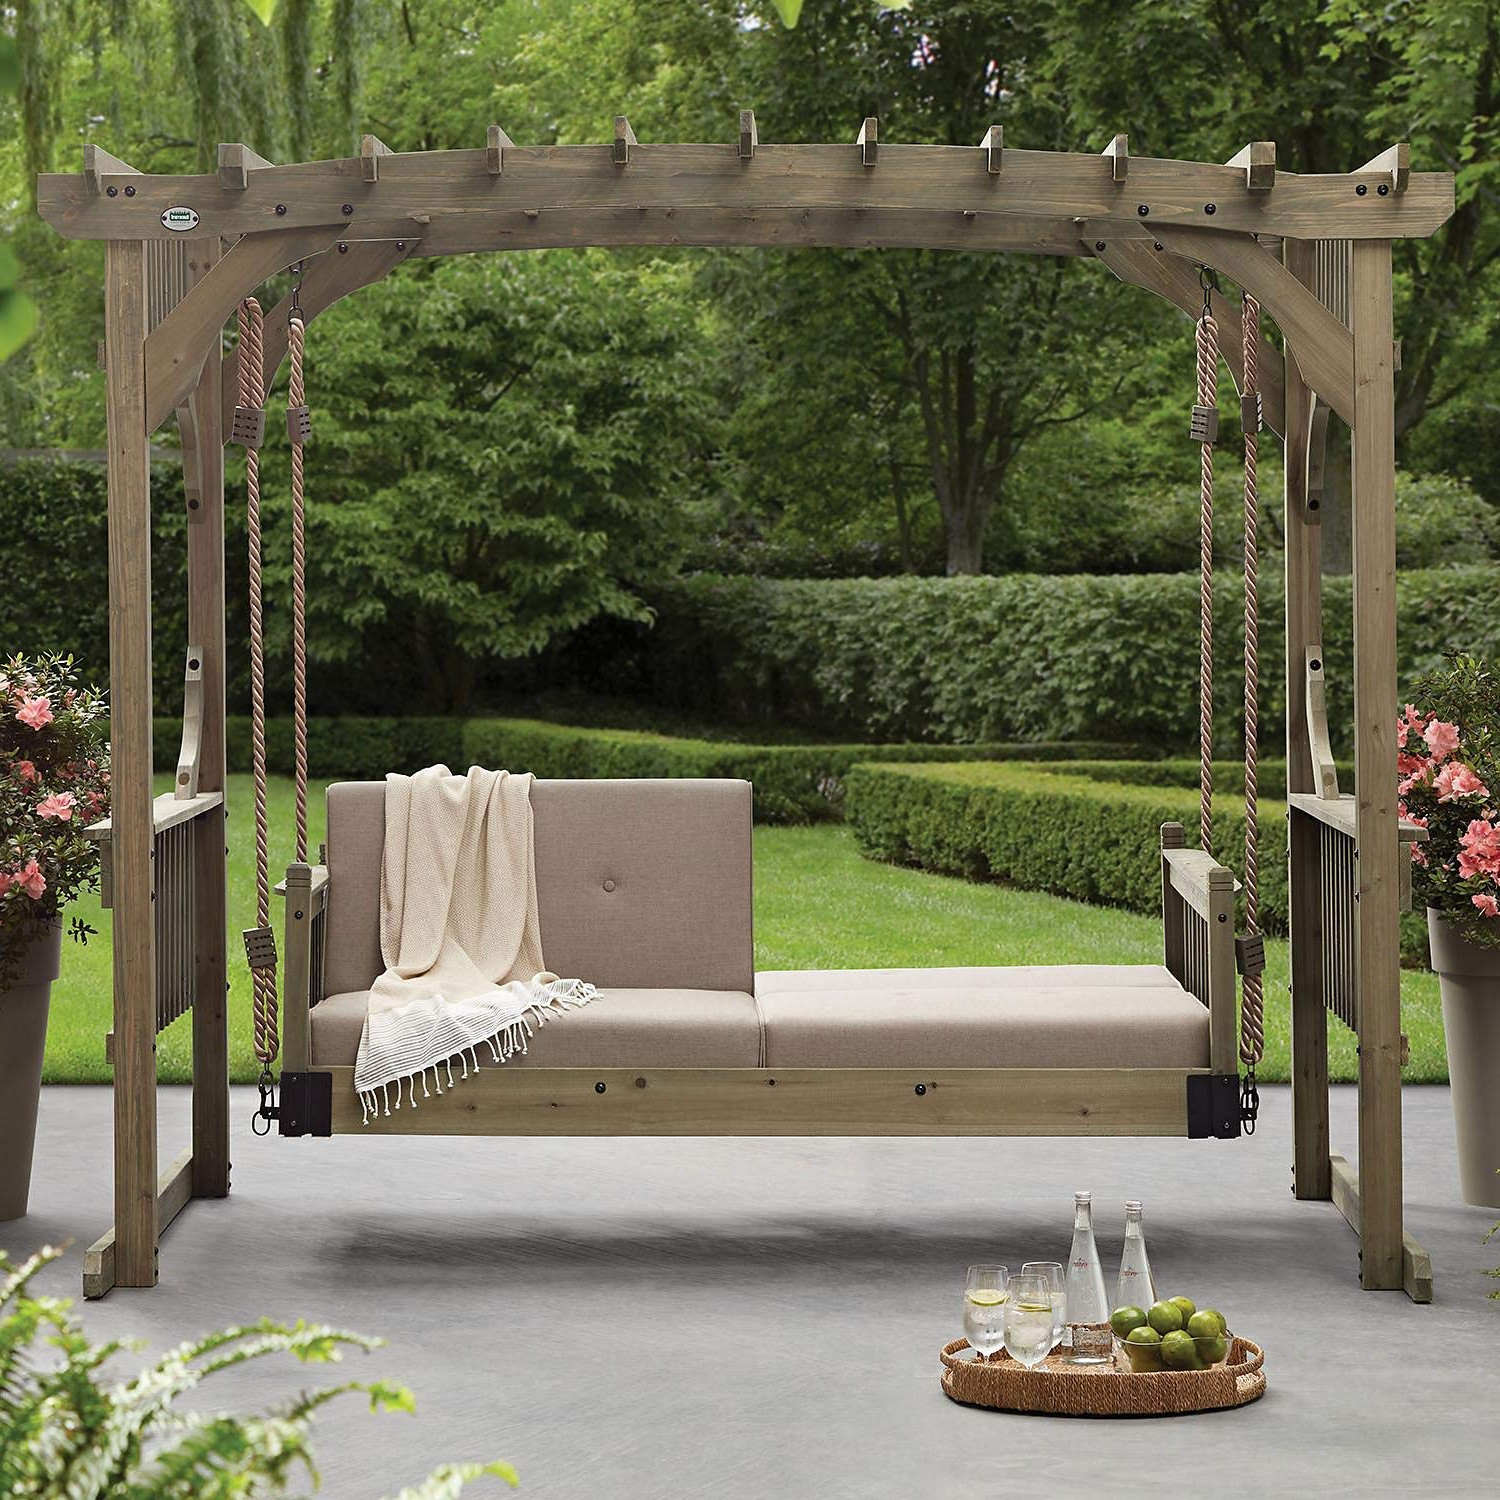 Most Recent Amazon: Sunbrella Luxury Patio Hanging Swing Lounger In Country Style Hanging Daybed Swings (Gallery 23 of 30)